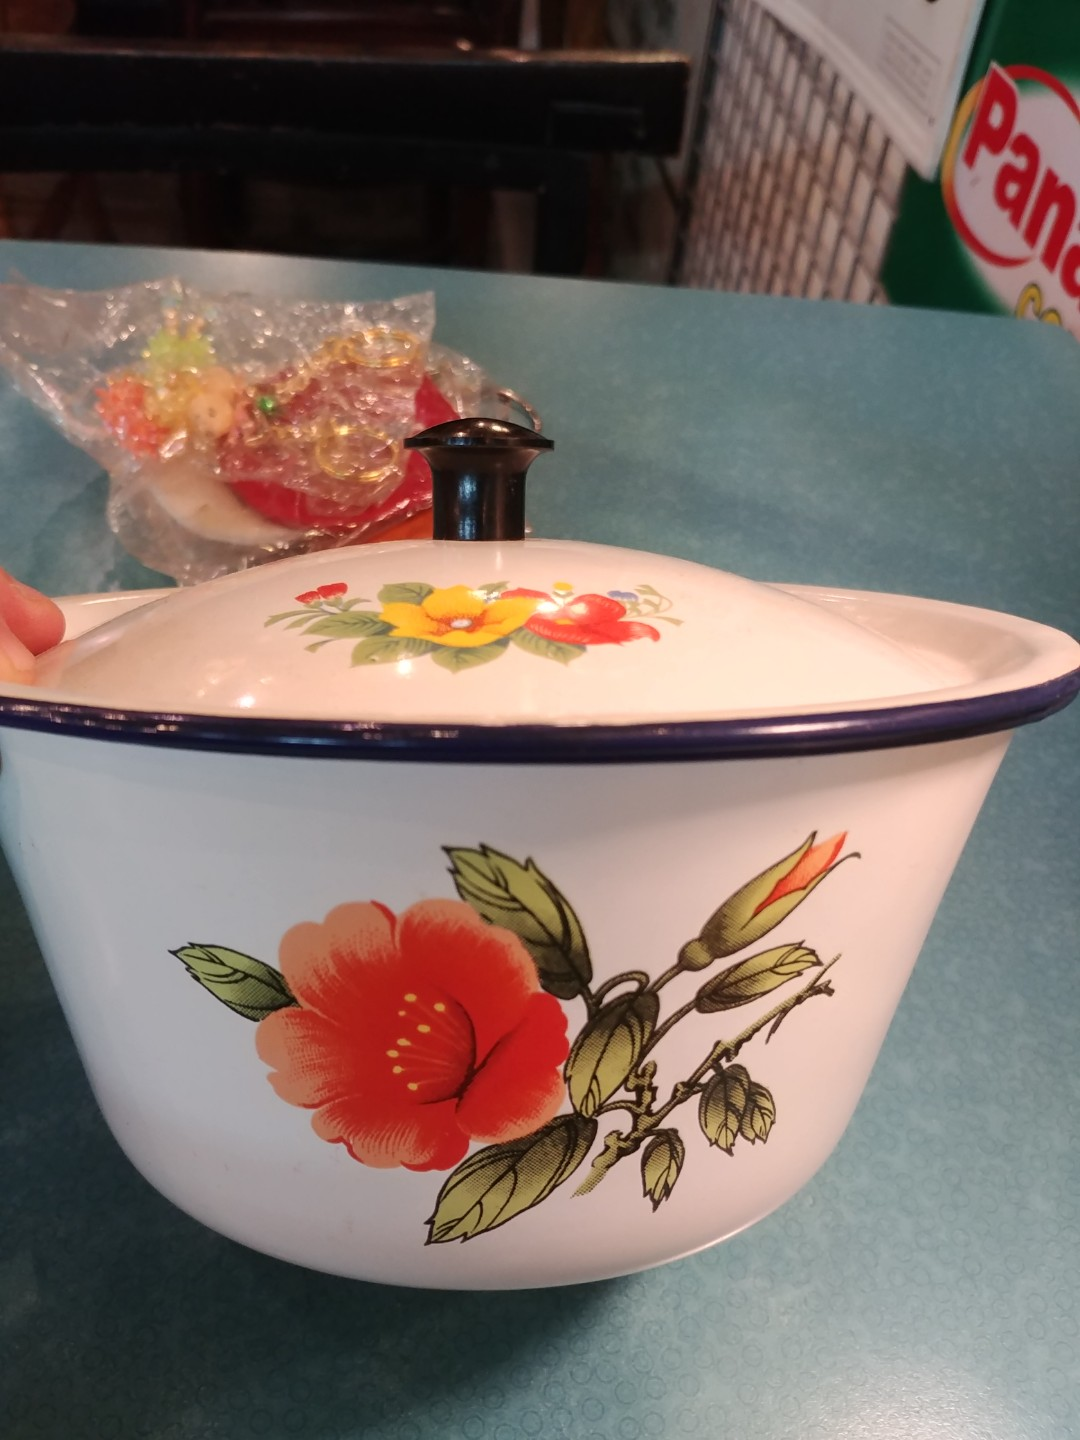 Vintage Kitchenware Enamel Pot Vintage Collectibles Vintage